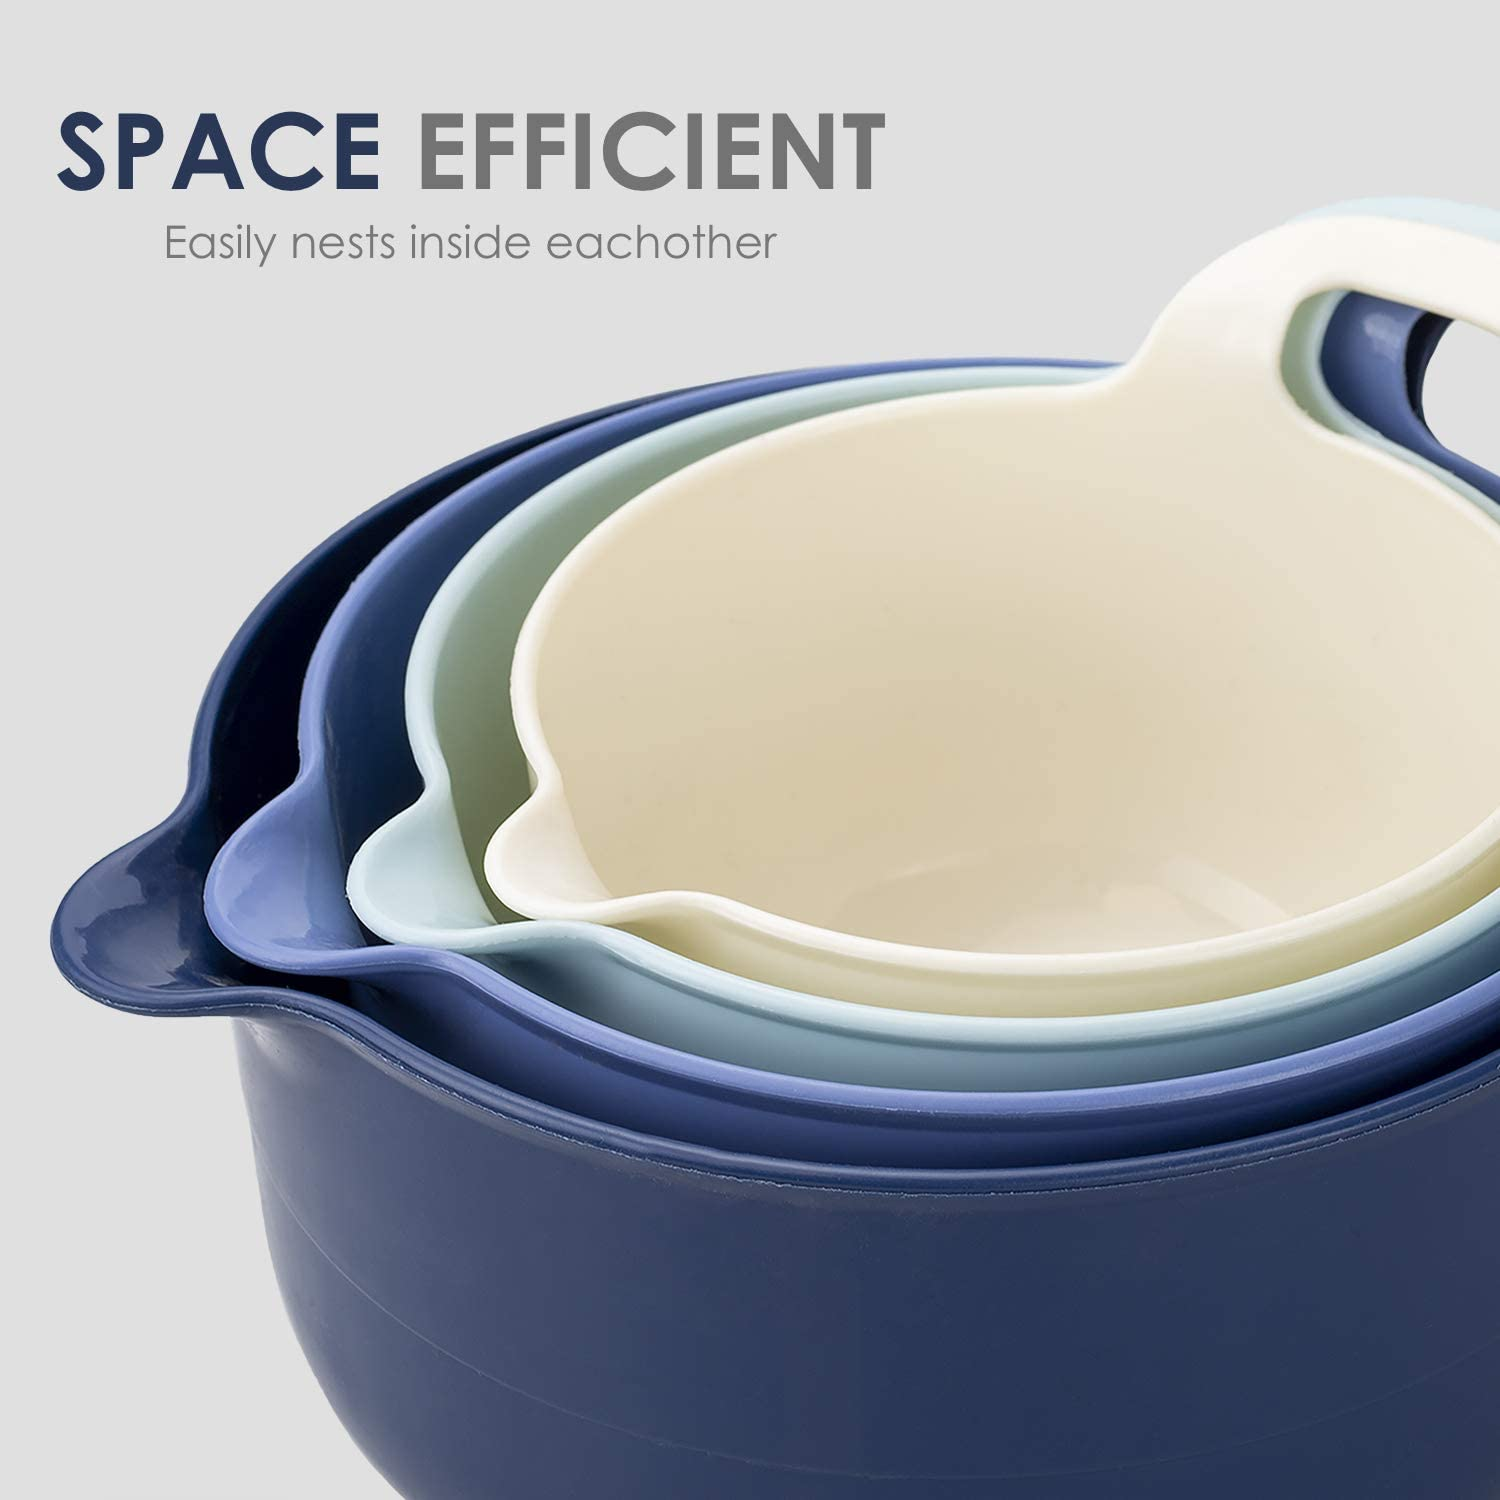 Ombre Blue Cook with Color Mixing Bowls 4 Piece Nesting Plastic Mixing Bowl Set with Pour Spouts and Handles